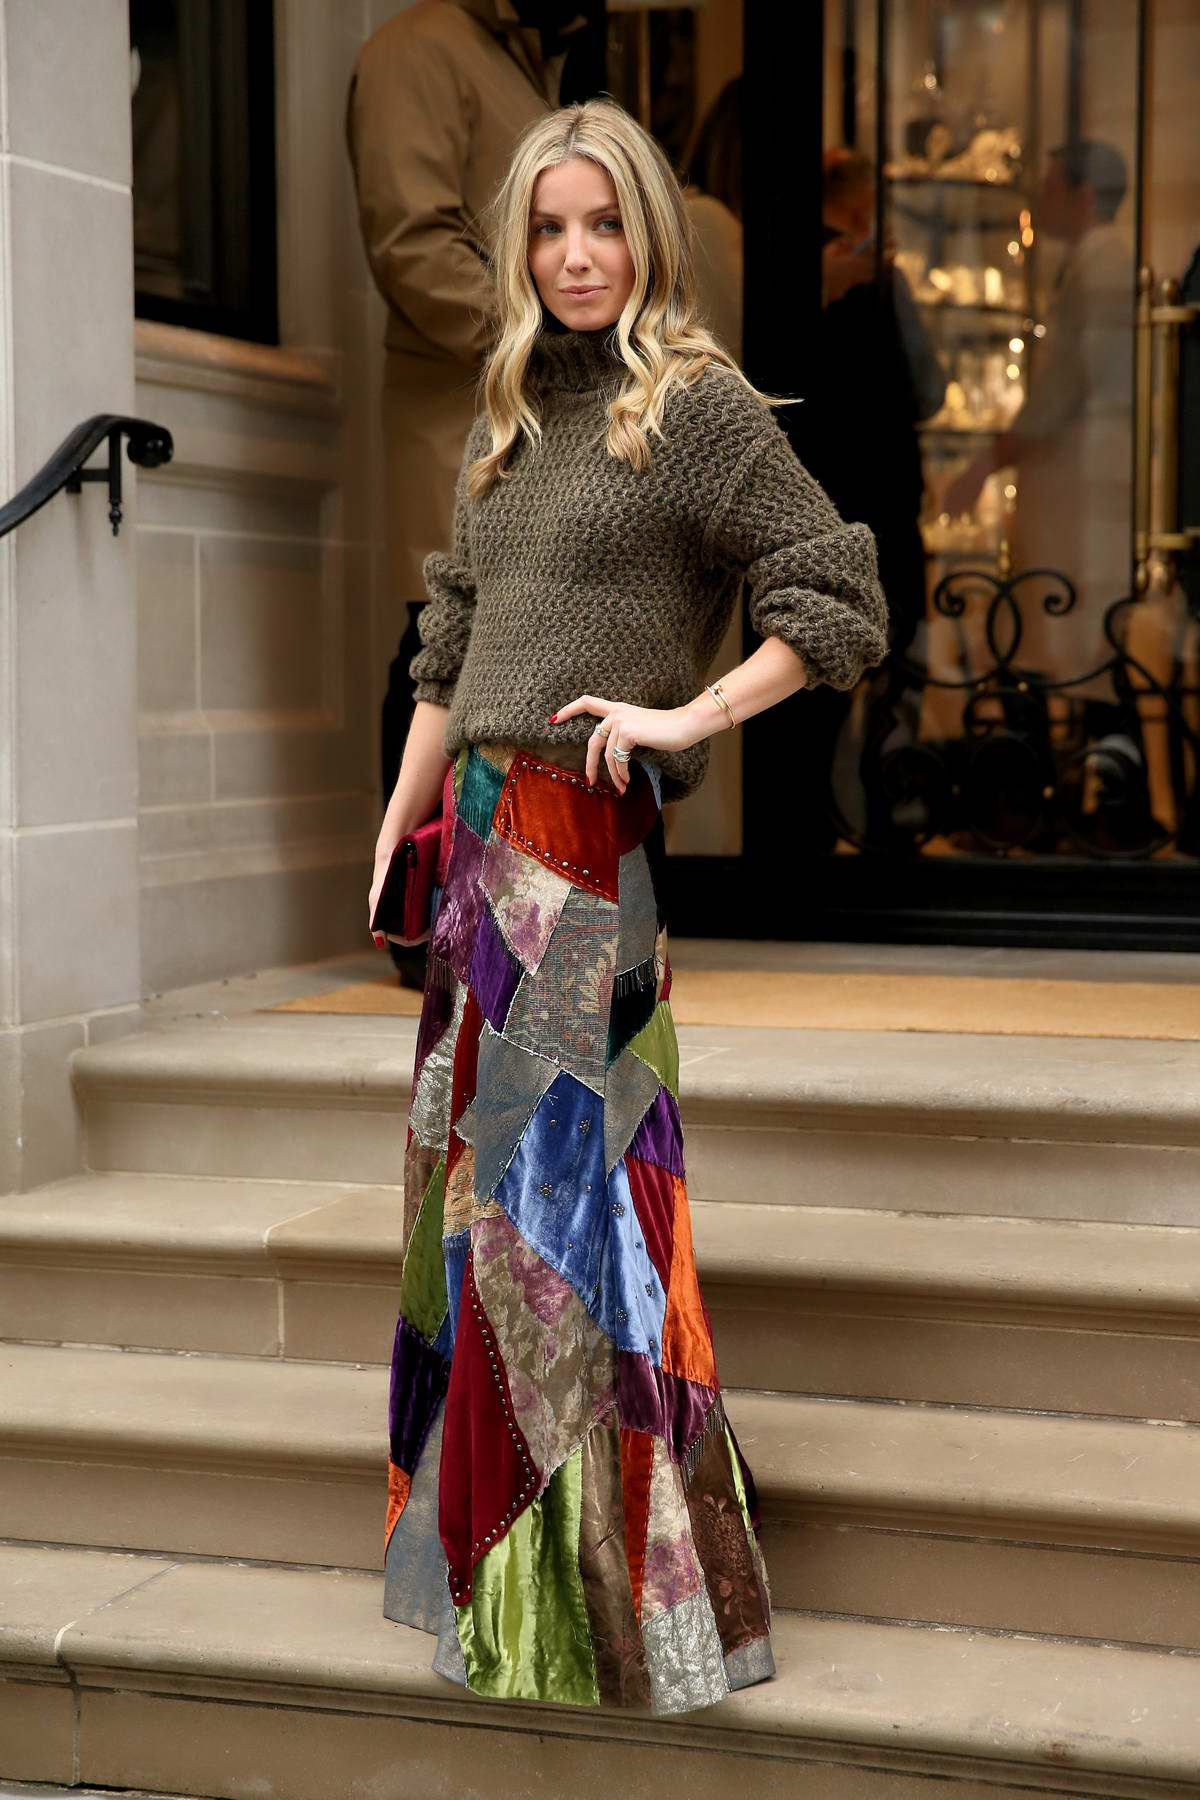 Annabelle Wallis leaves the Ralph Lauren show during New York Fashion Week in New York City